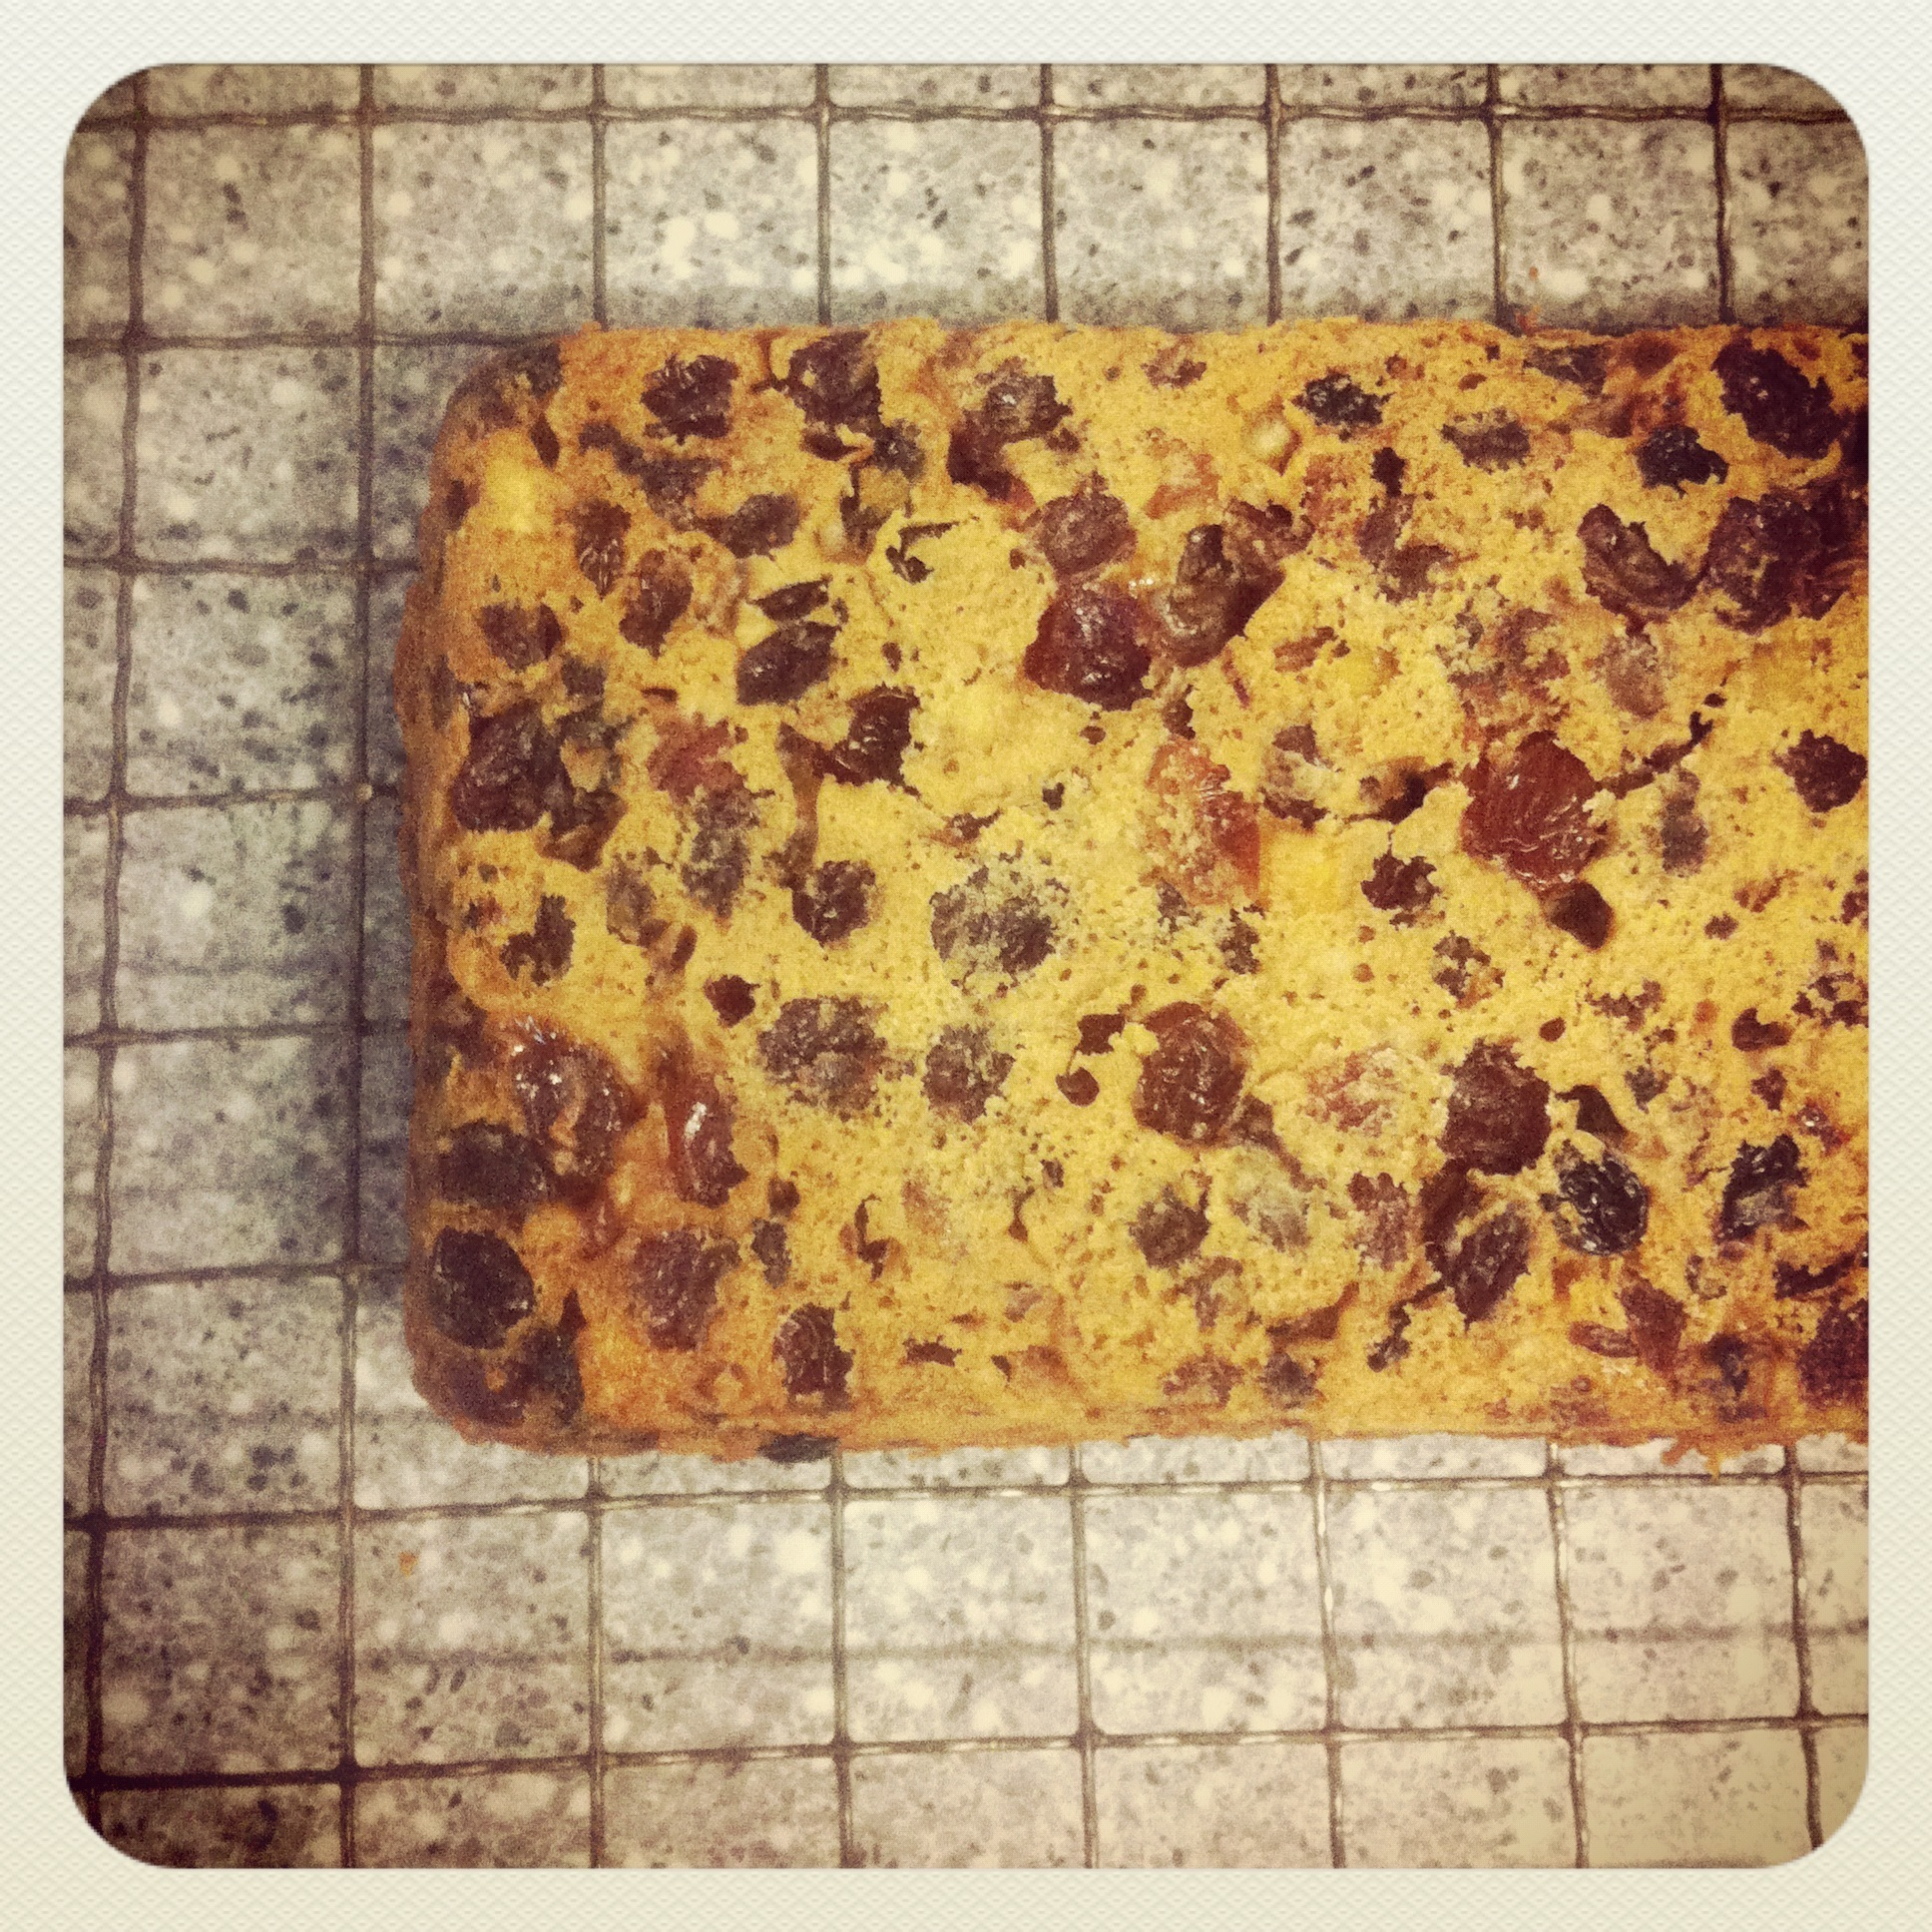 A little late, but Sugar Free, Fat Free, Easy Fruitcake.